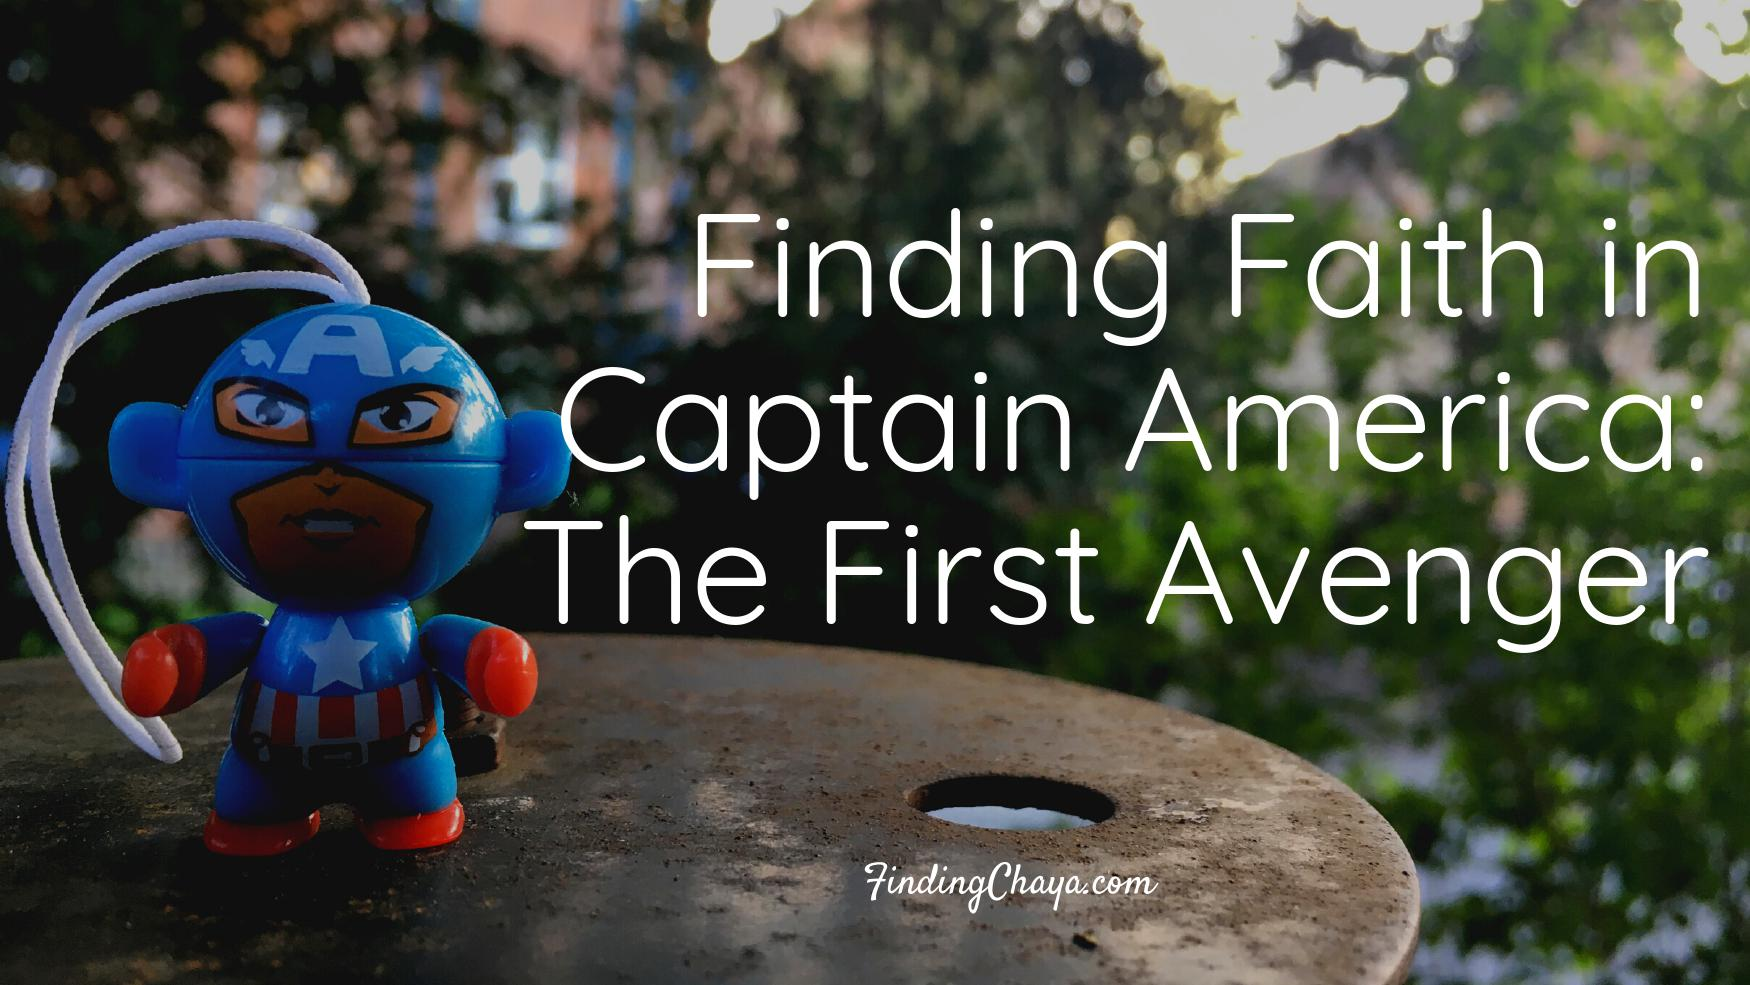 The Marvel Lockdown || Finding Faith in Captain America: The First Avenger